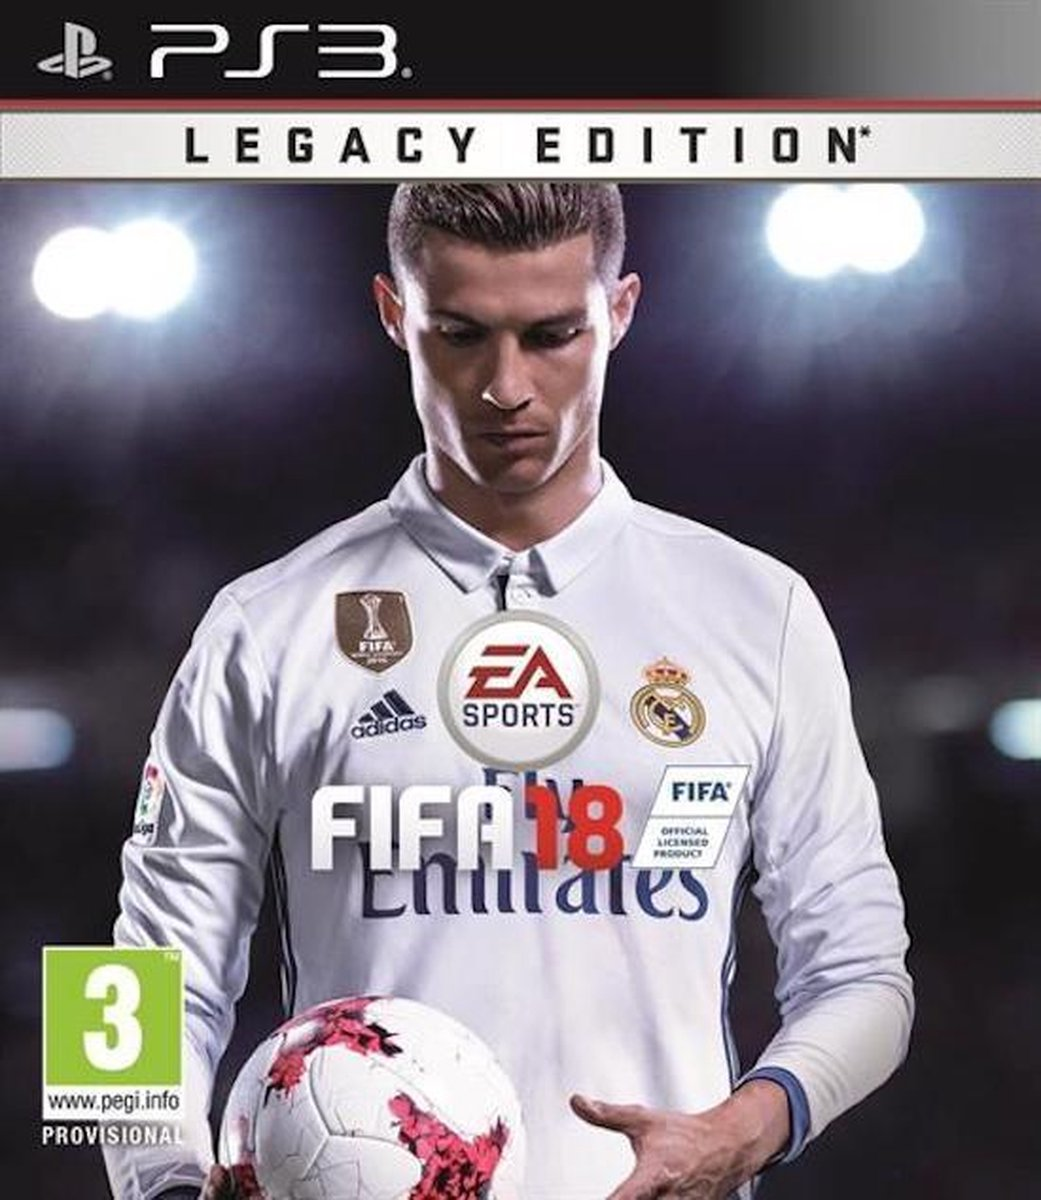 FIFA 18 - Legacy Edition - PS3 (EN/AR Cover) - Electronic Arts